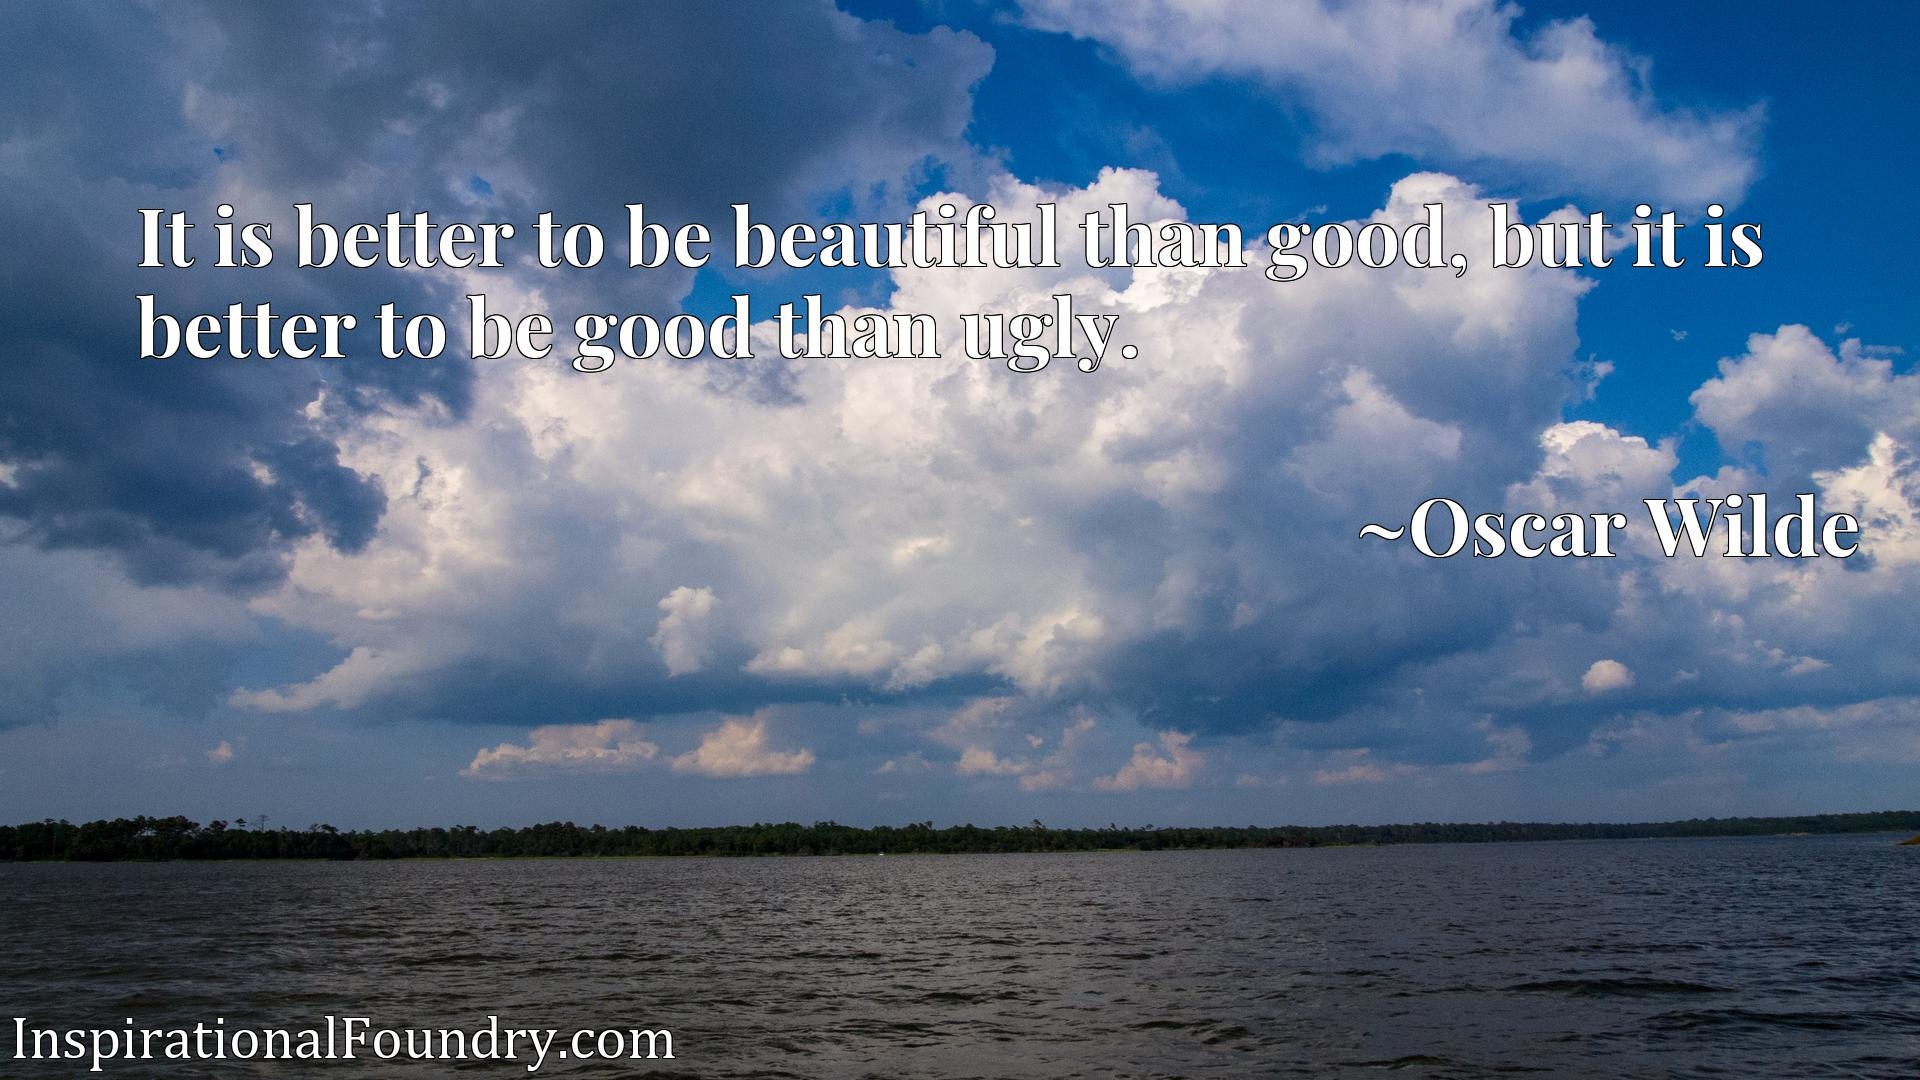 It is better to be beautiful than good, but it is better to be good than ugly.